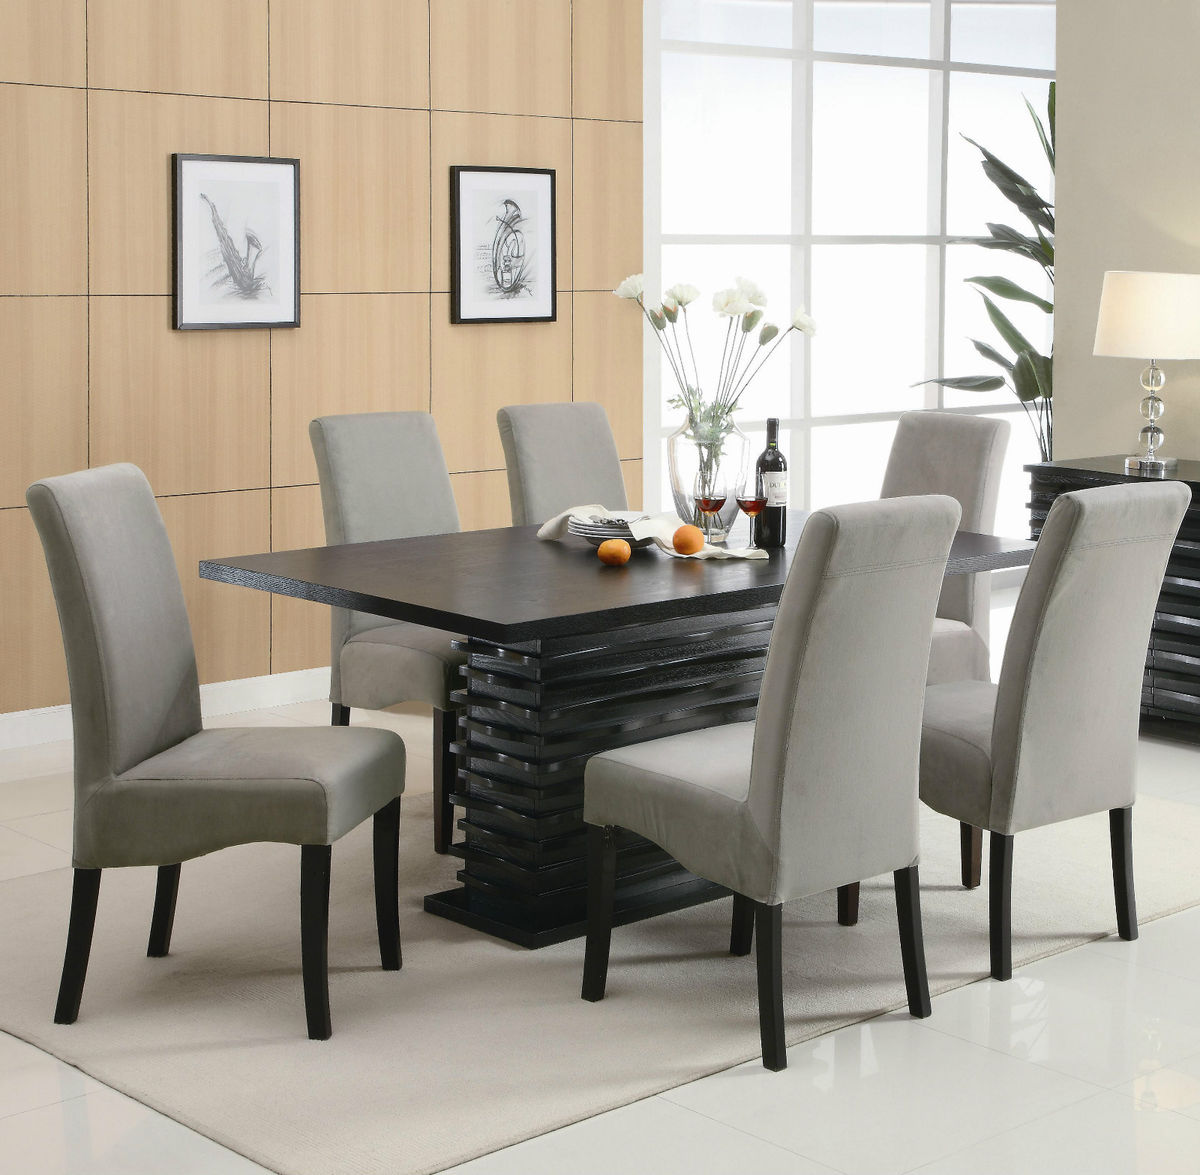 Best pretty dining table with chairs on contemporary black dining table chairs  dining modern dining room furniture for sale